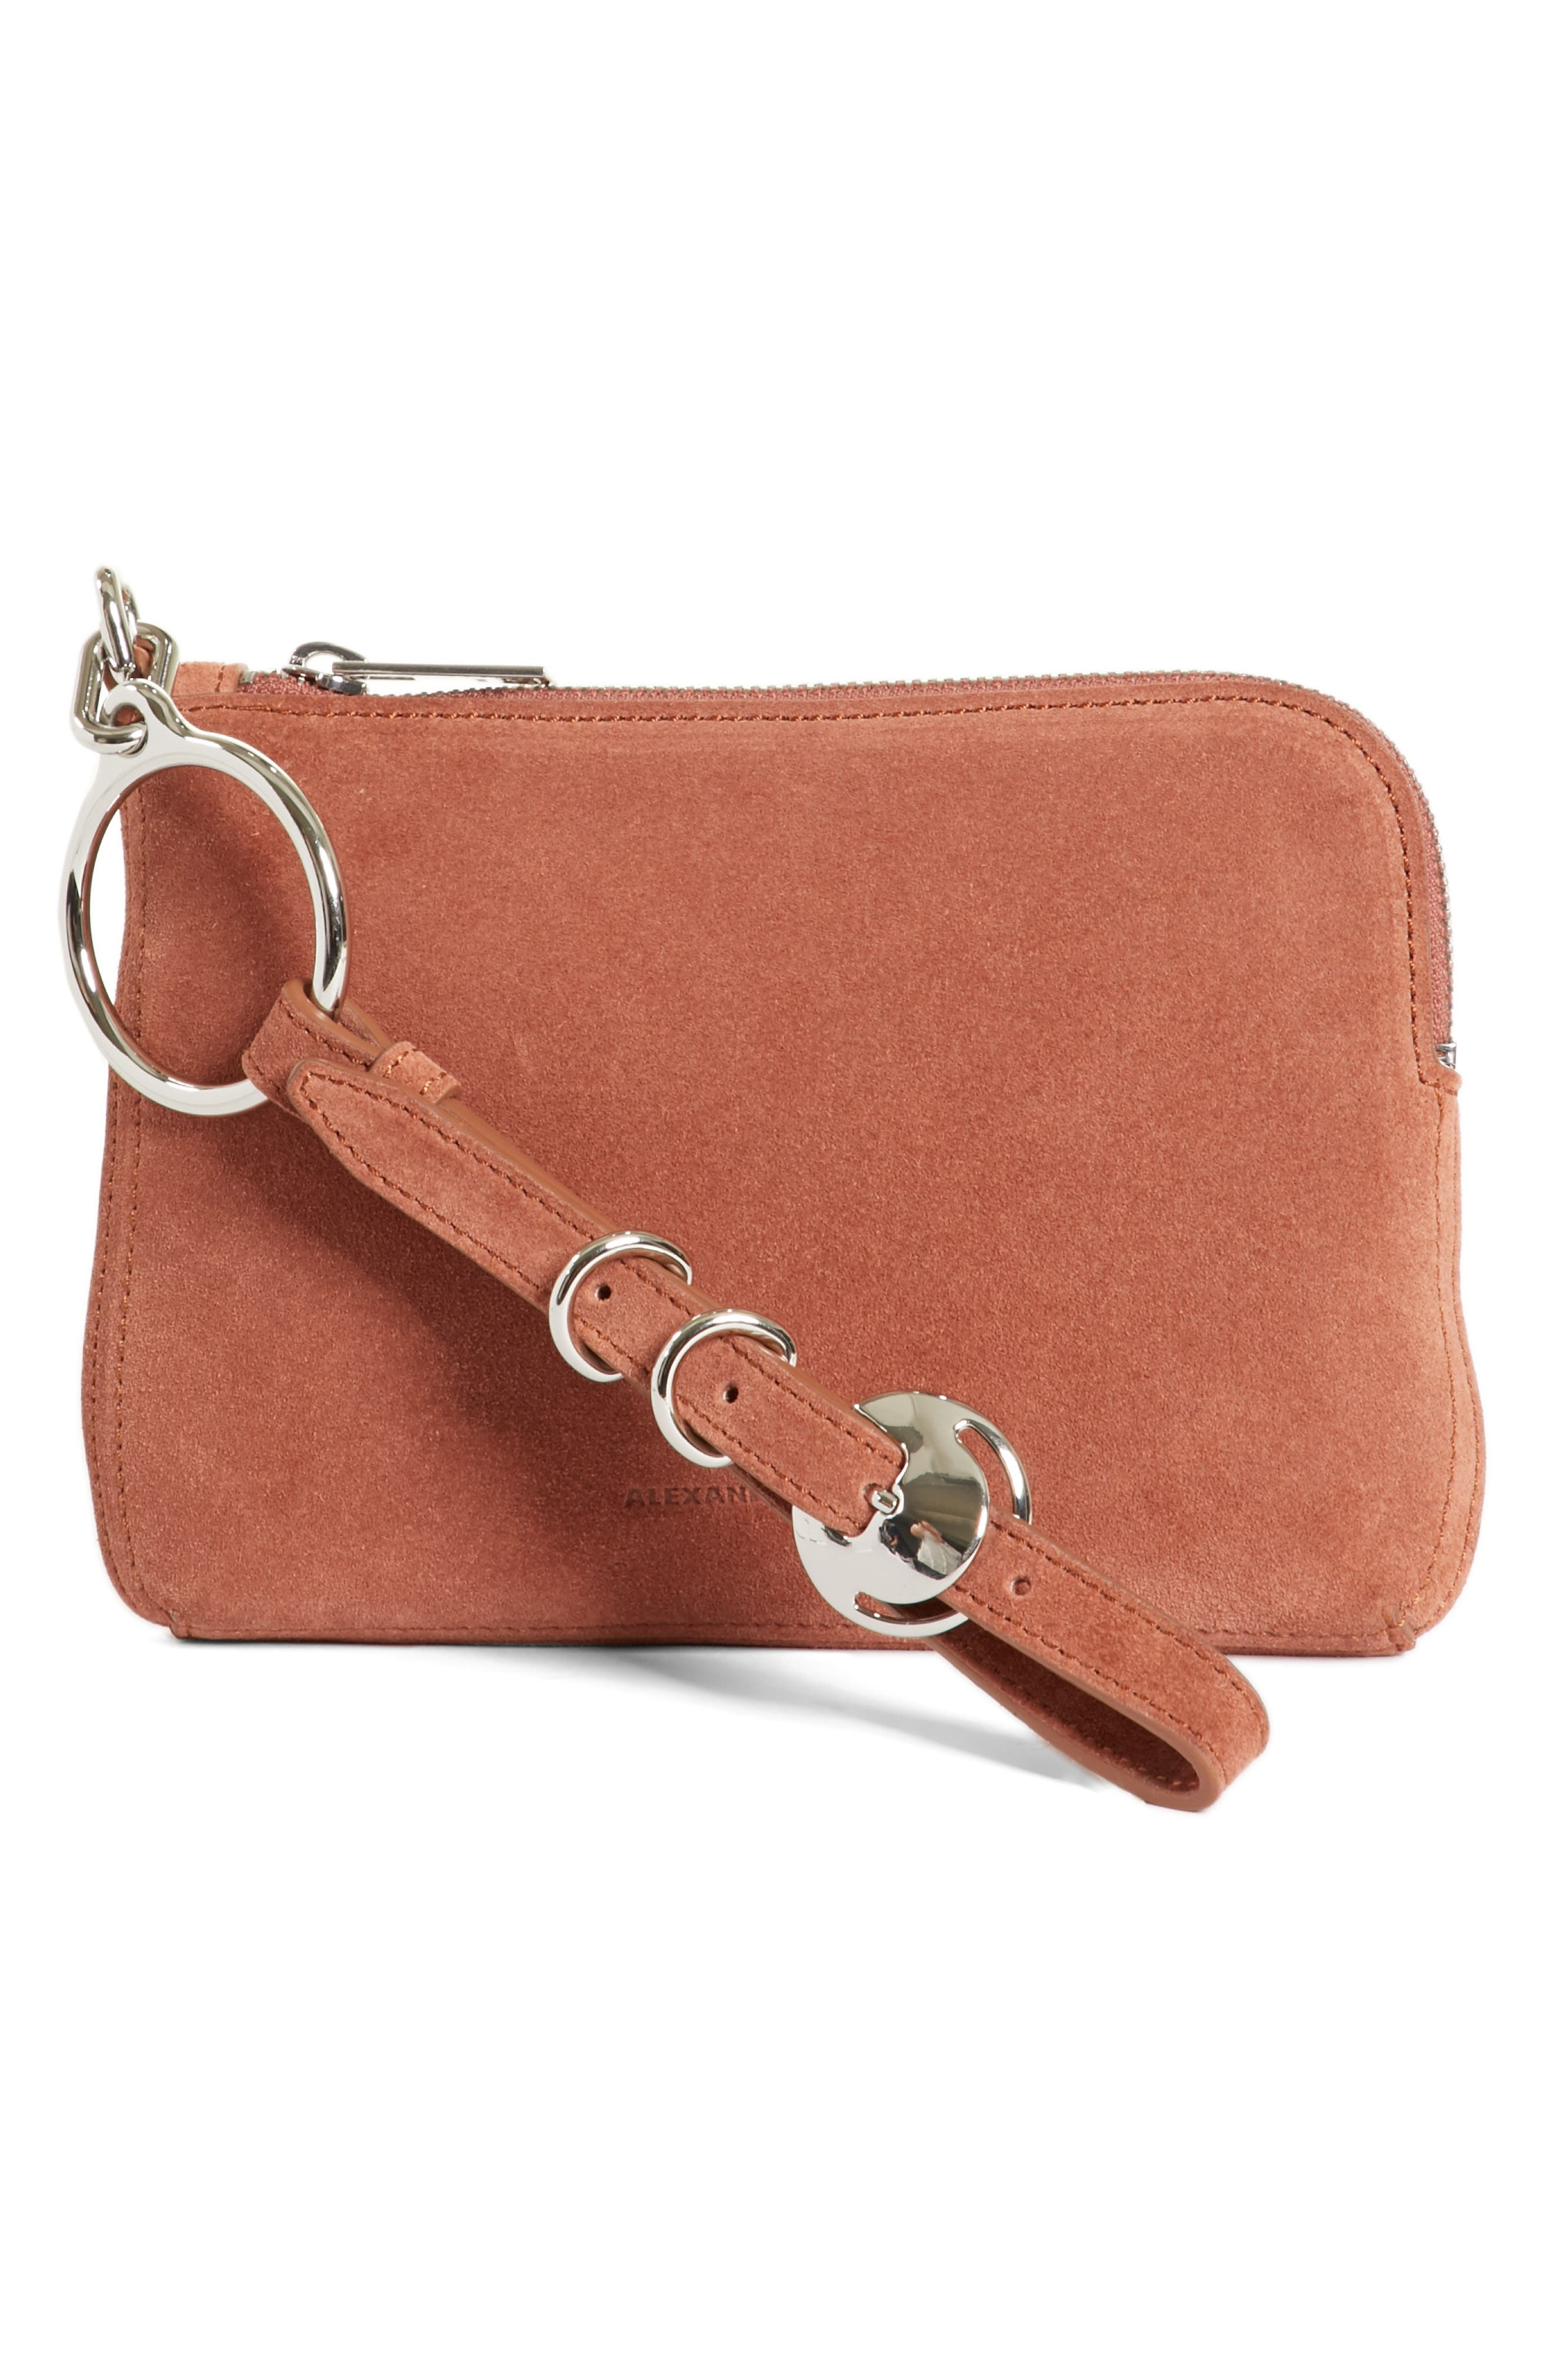 Main Image - Alexander Wang Small Ace Suede Wristlet